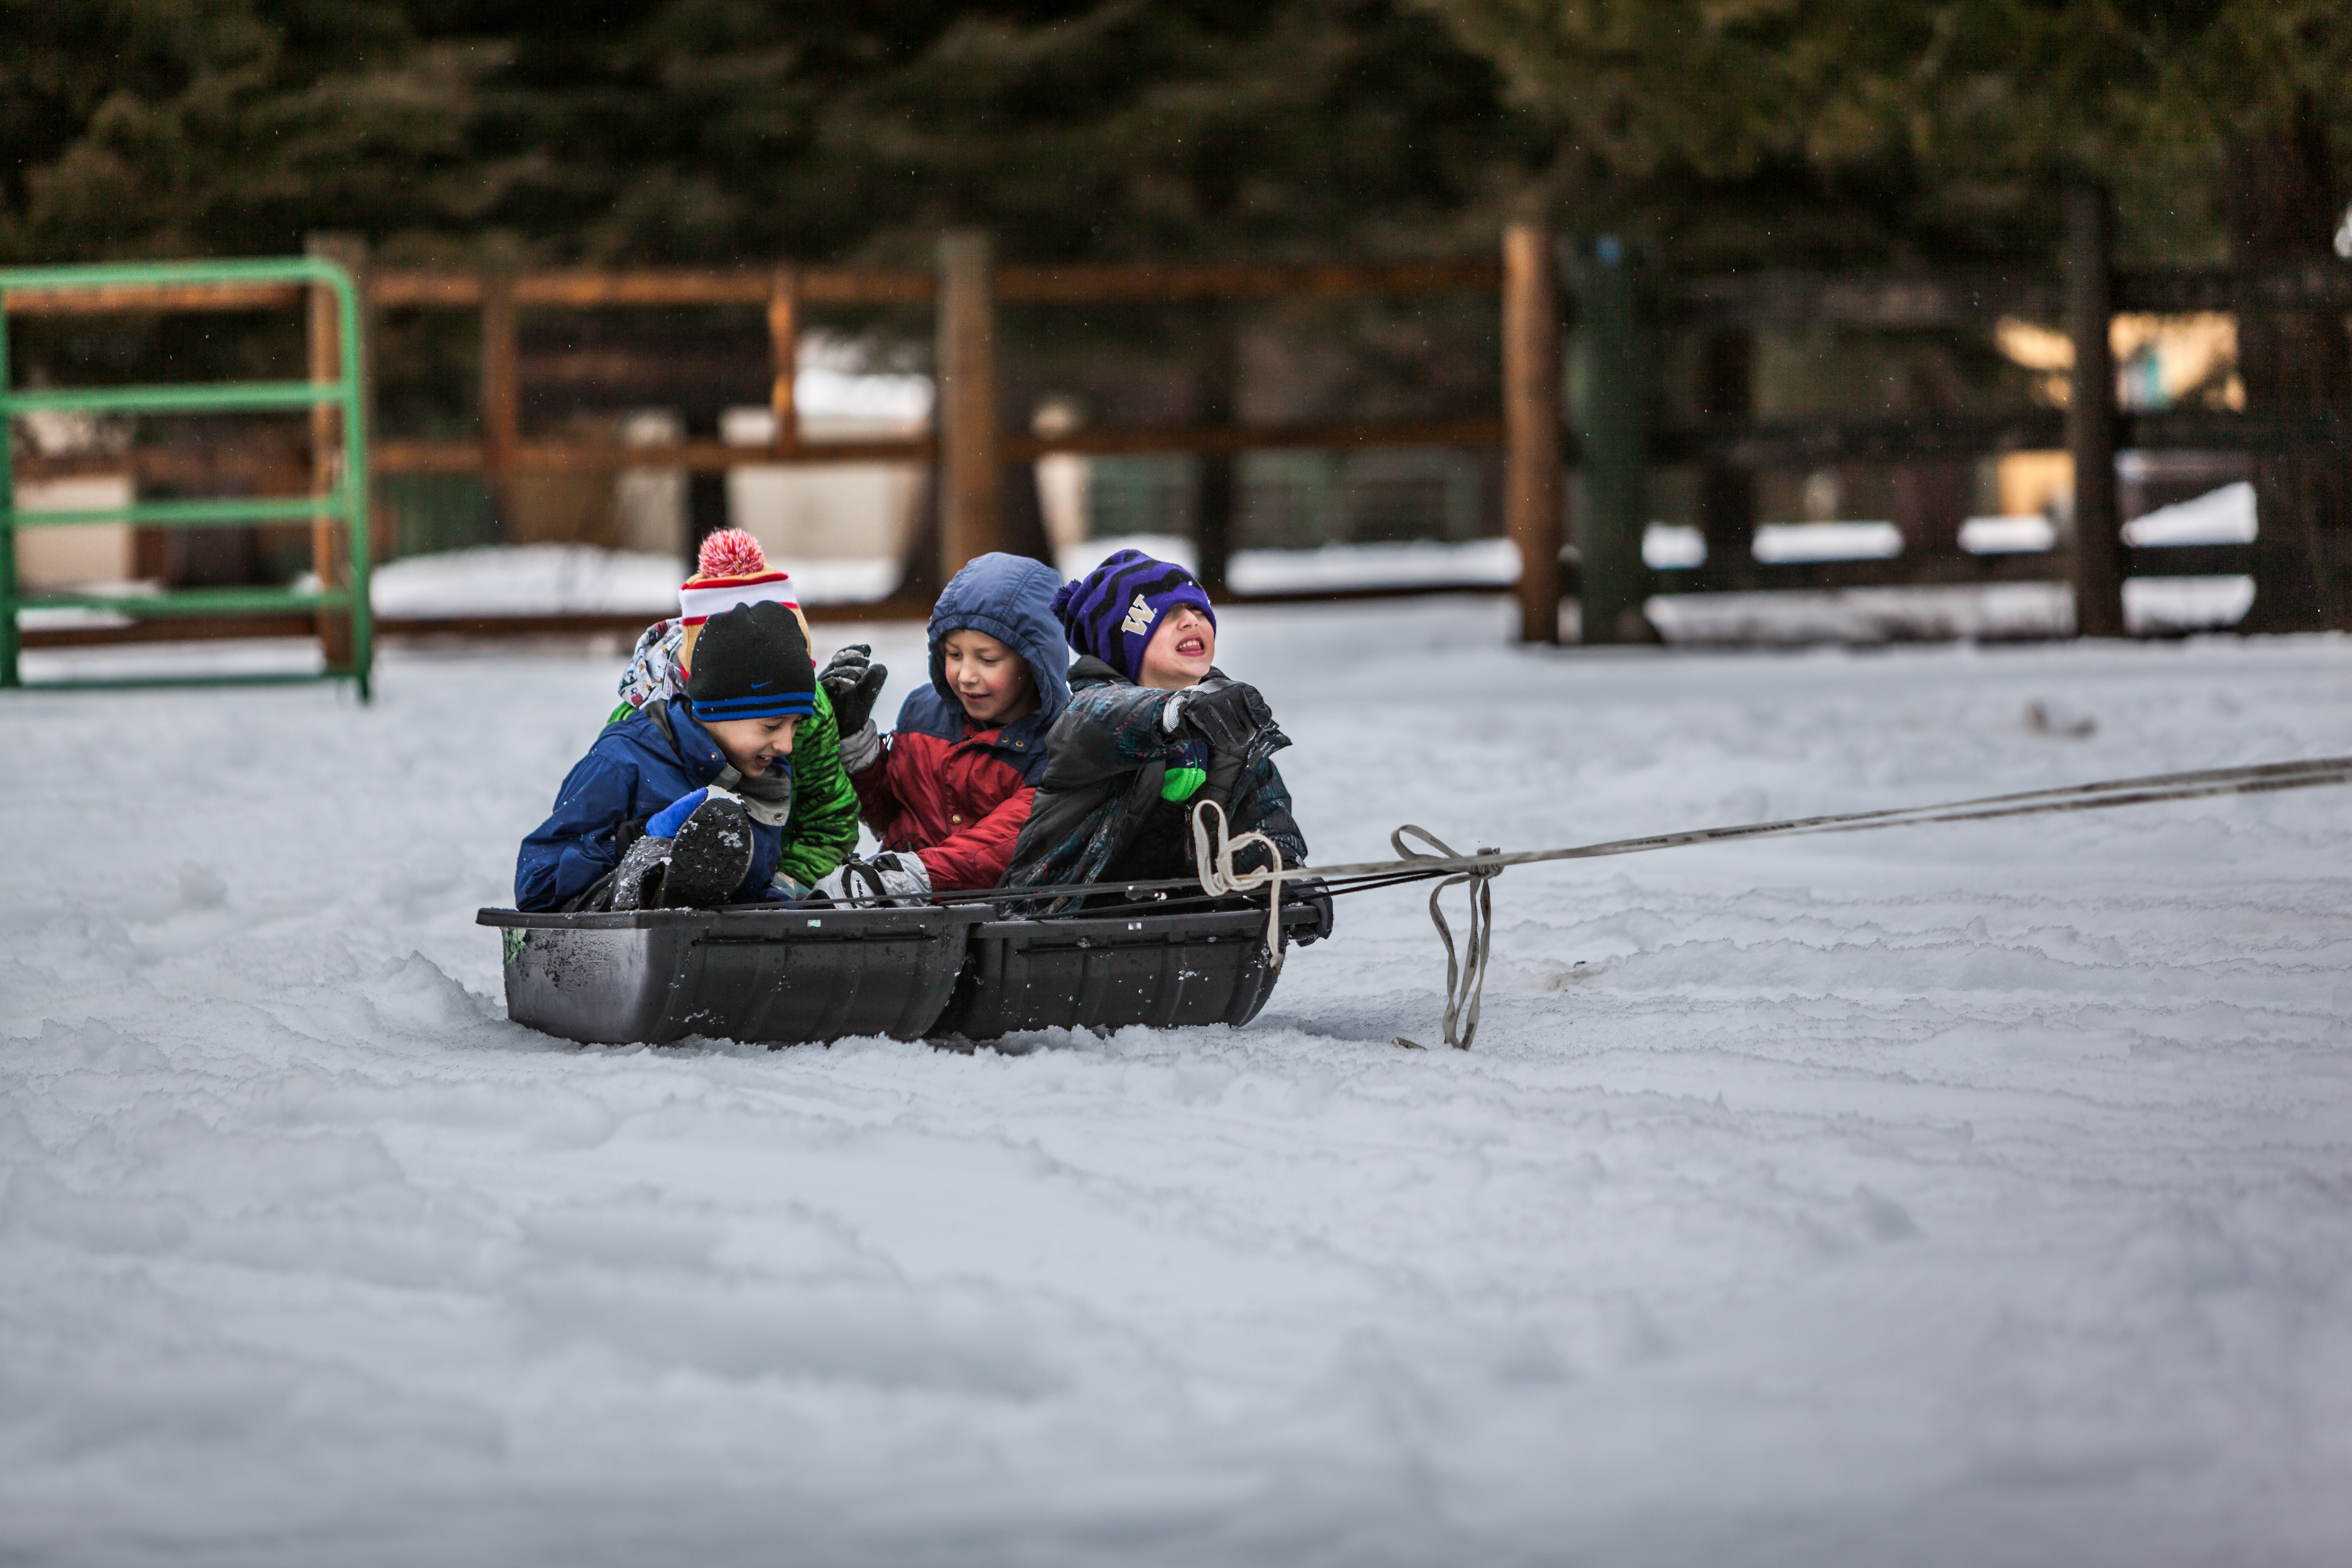 Children riding on a sled pulled by a rope in a fenced area in the cold